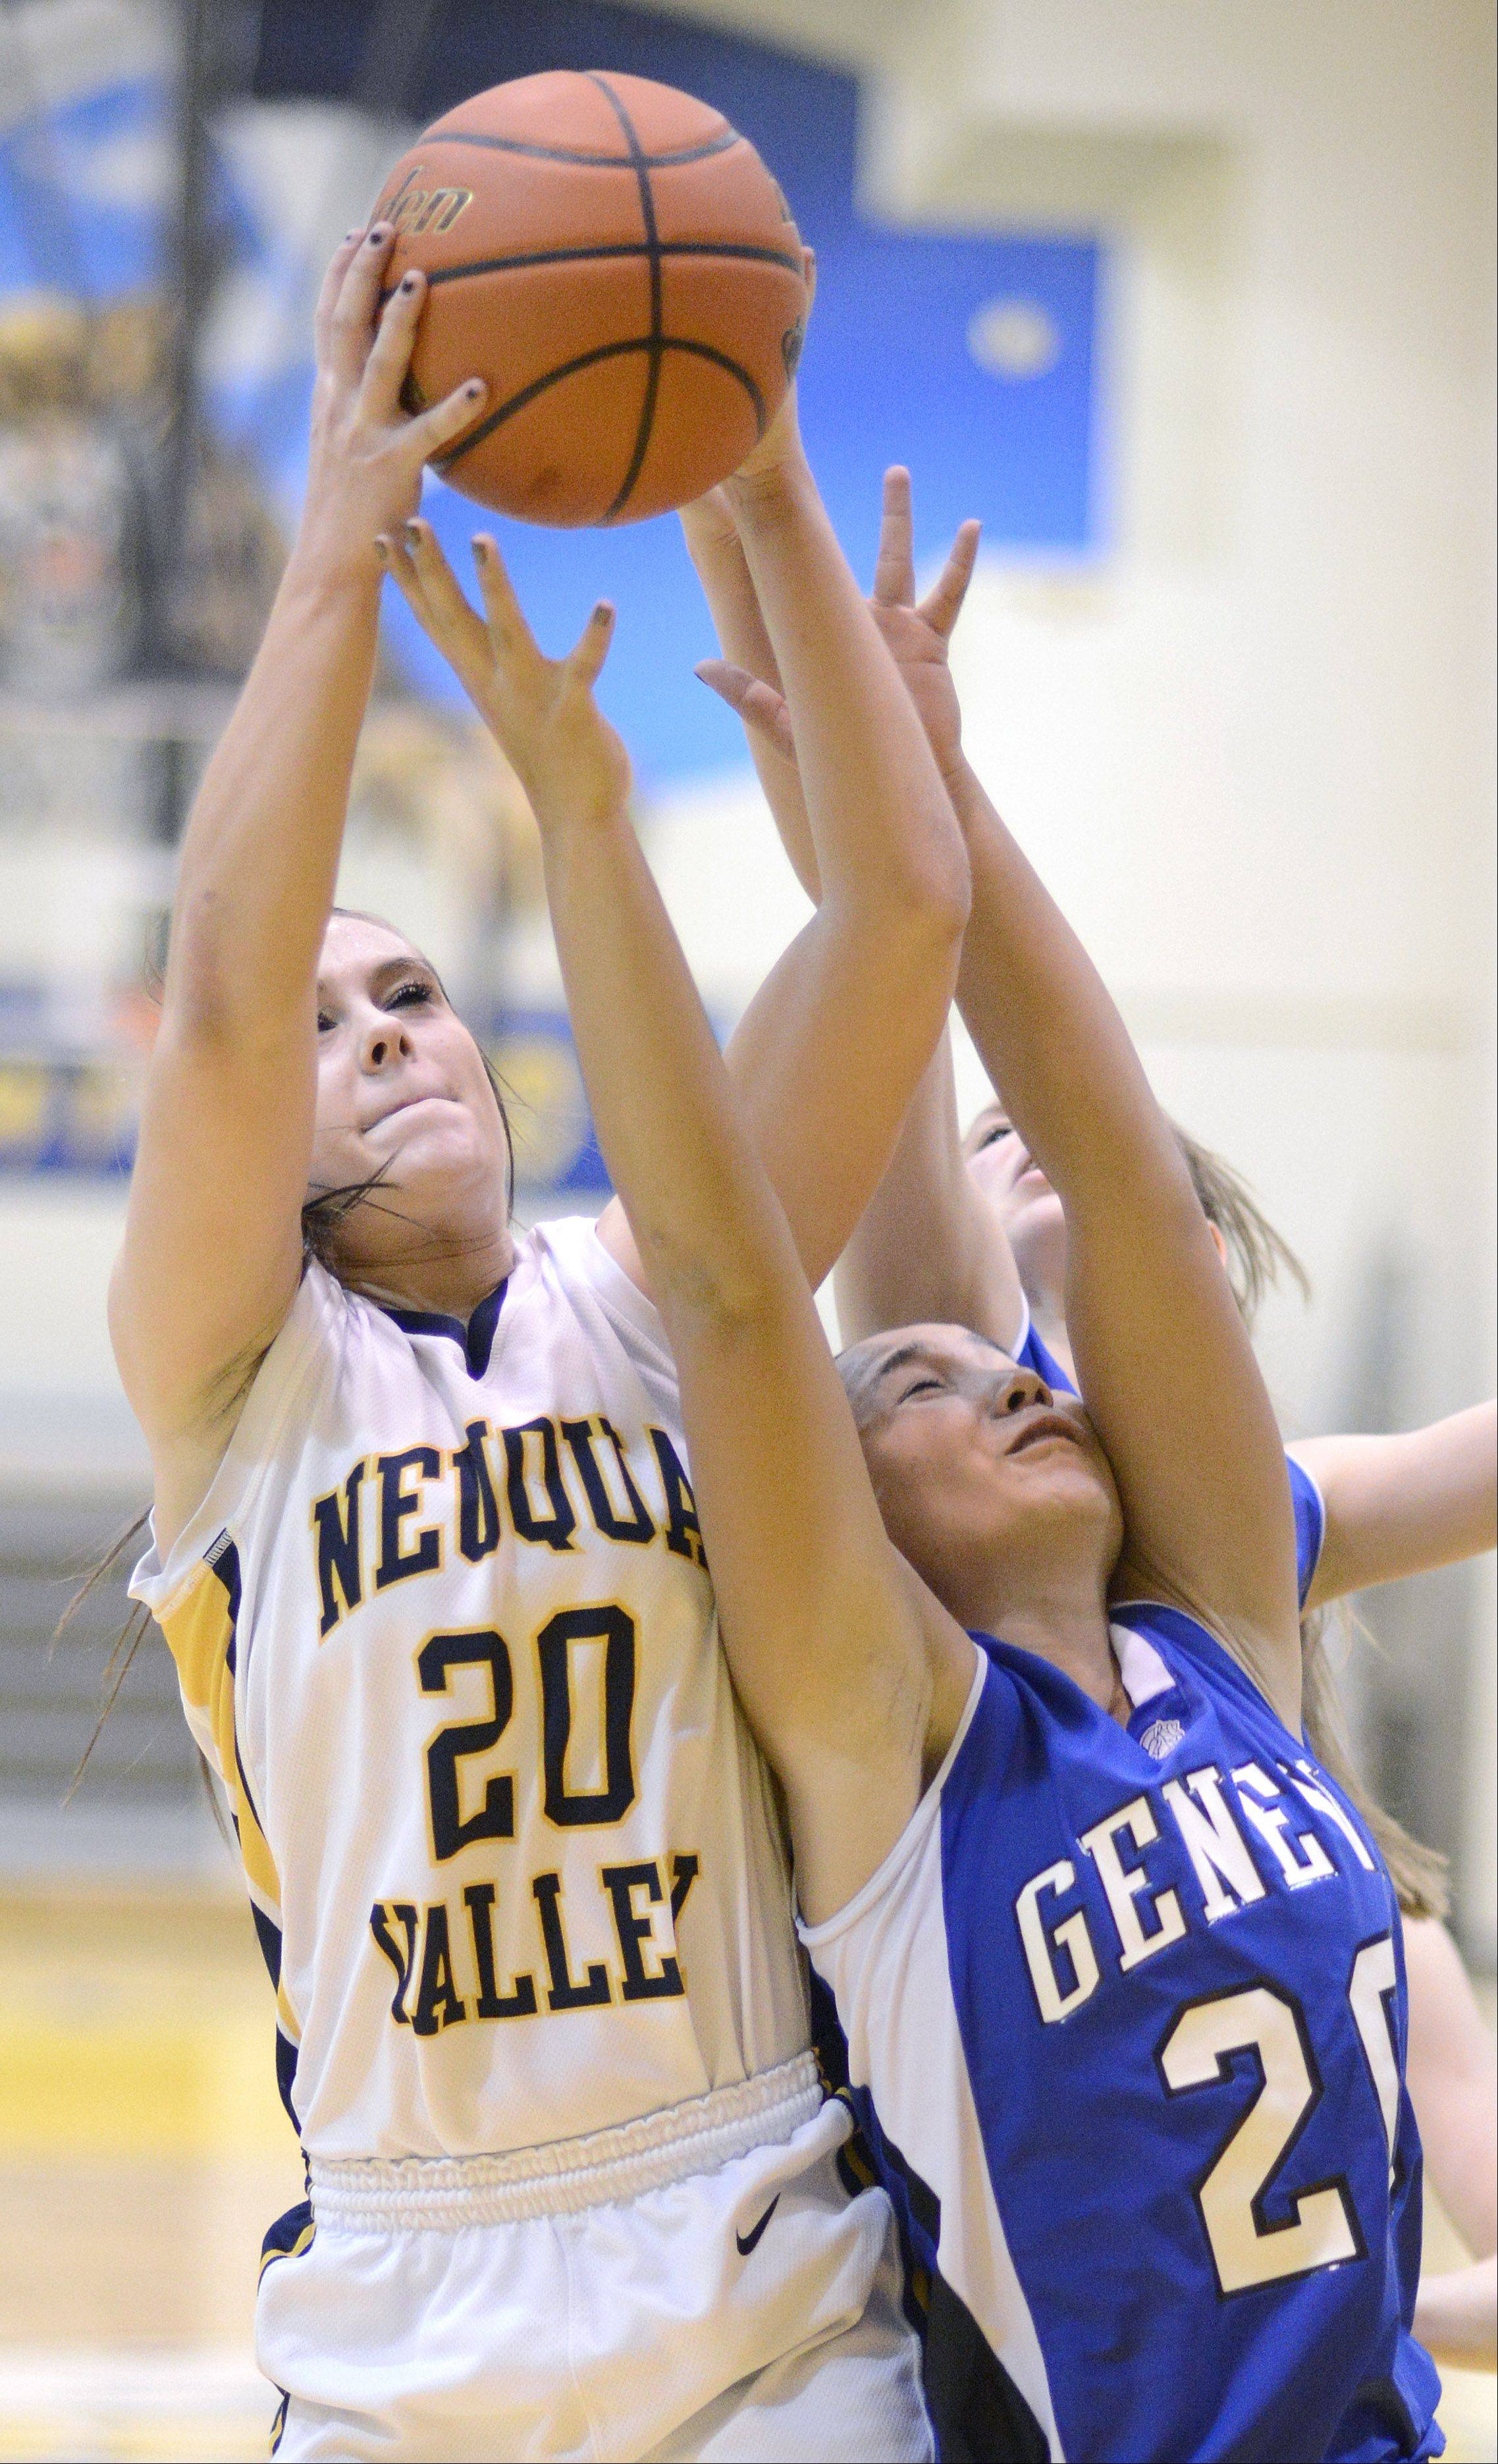 Neuqua Valley's Niki Lazar and Geneva's Kelly Gordon leap for a rebound in the fourth quarter of the Upstate Eight championship on Friday, February 8.